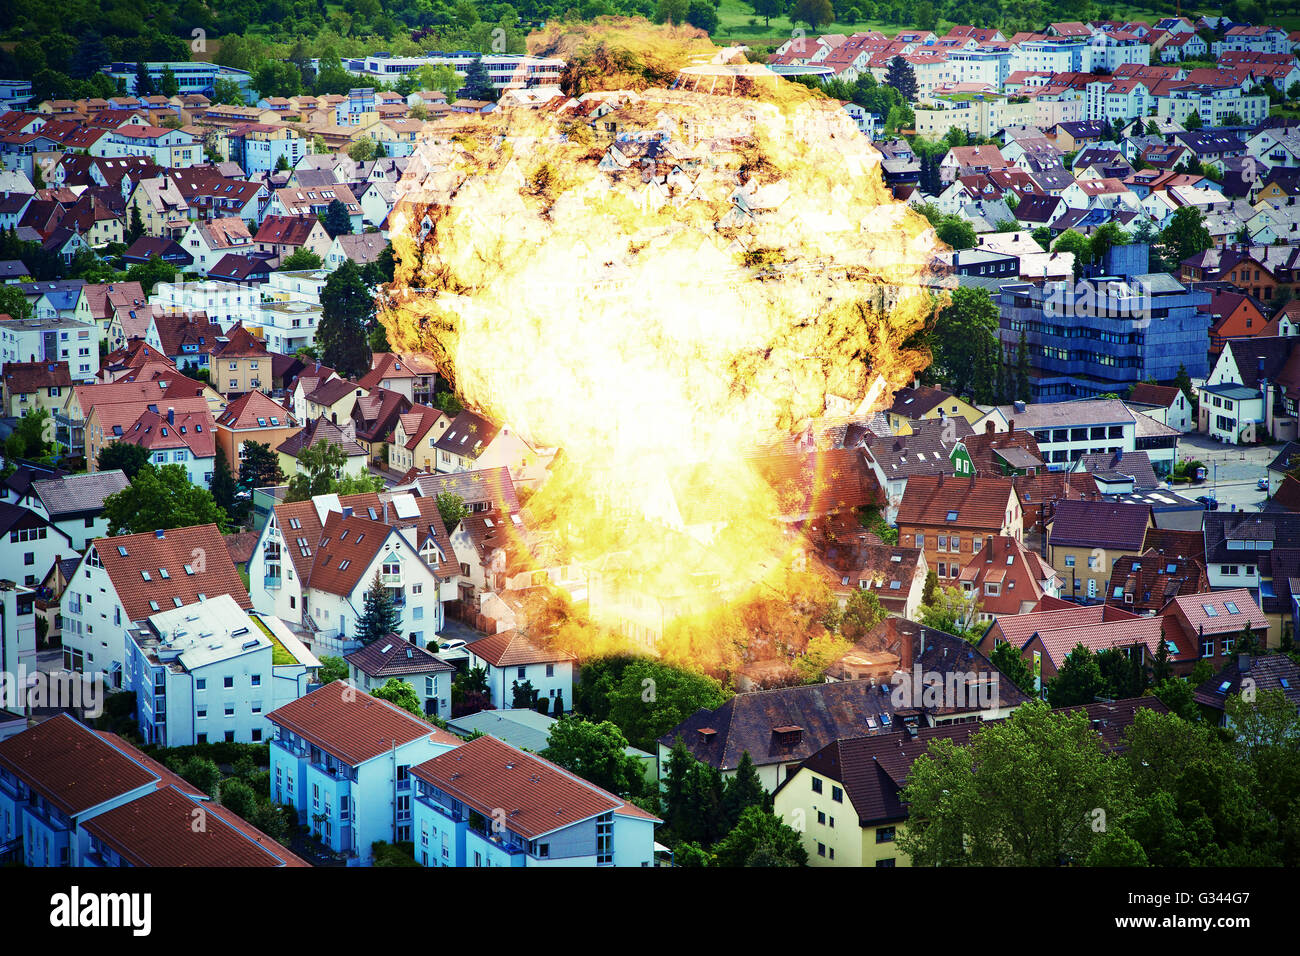 Big explosion in a town - abstract photo - Stock Image